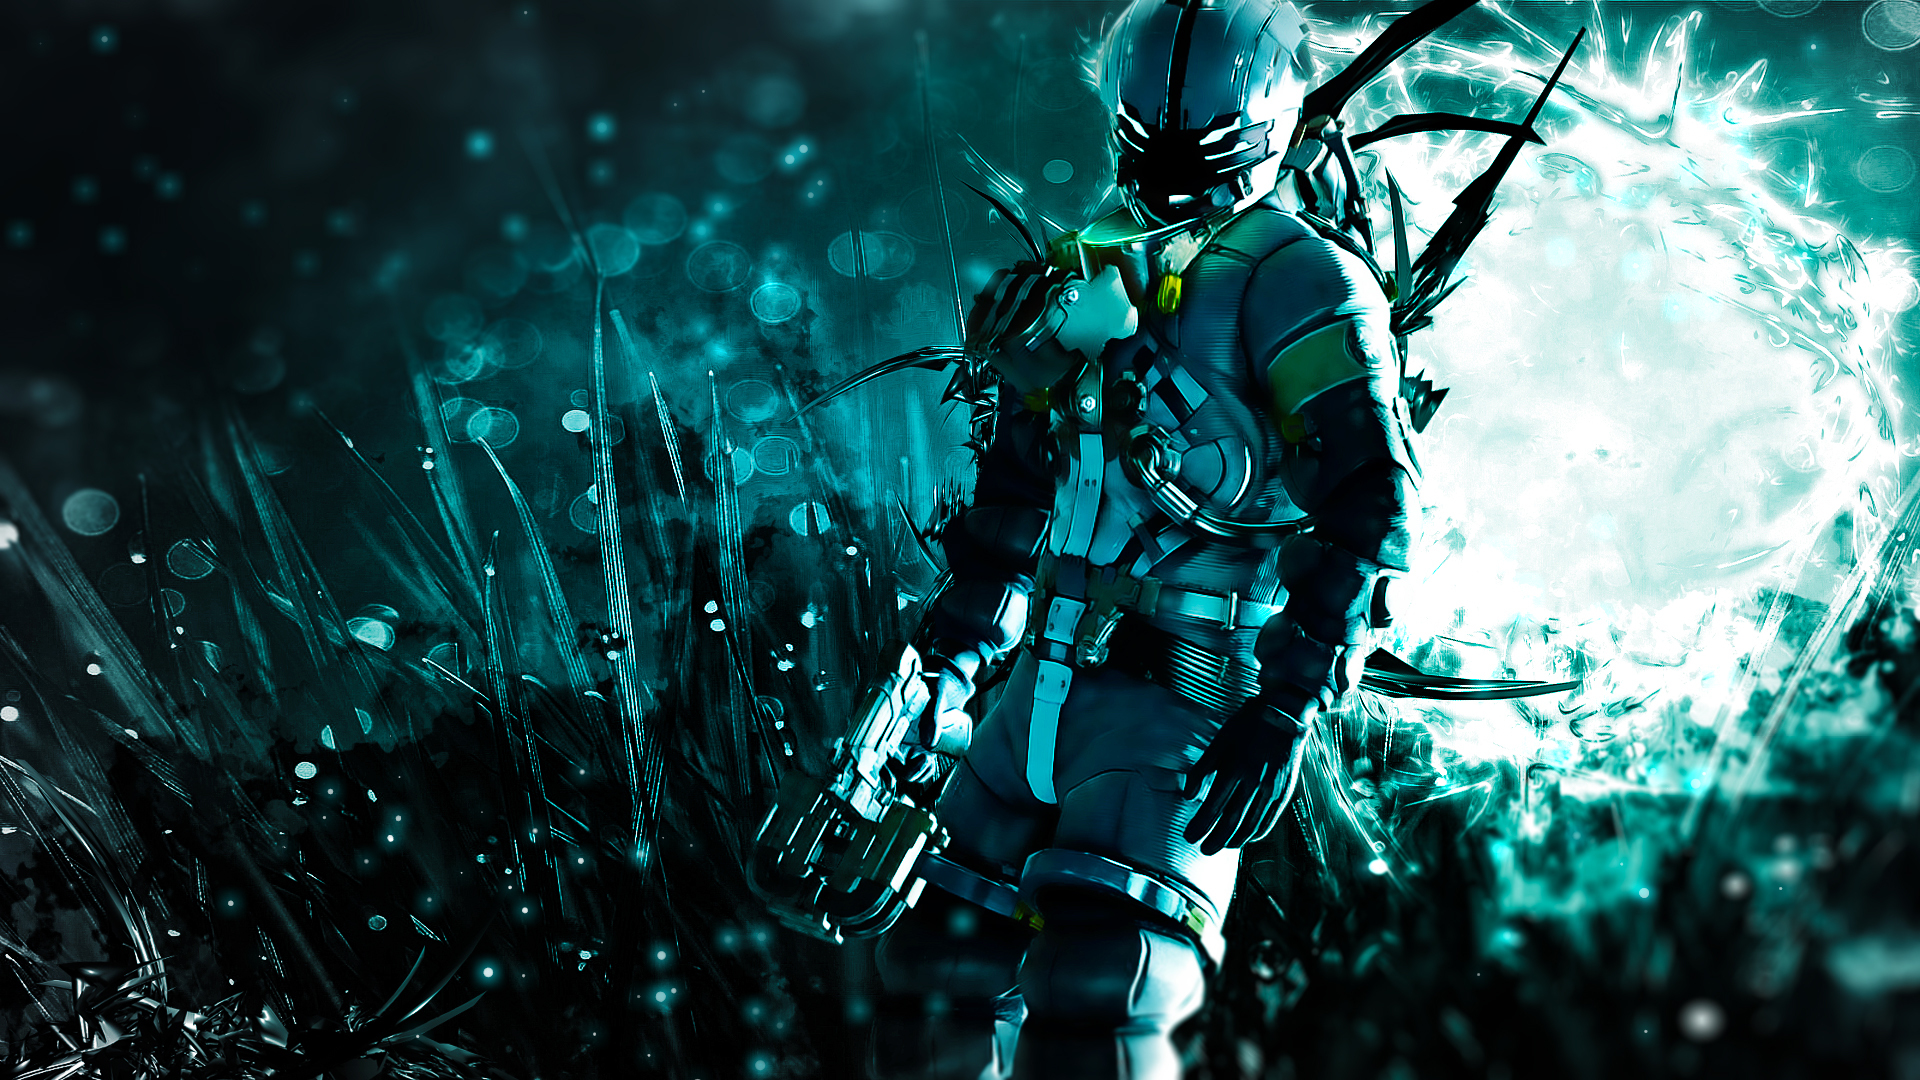 Dead space 3 wallpapers pictures images - Dead space 3 wallpaper 1080p ...